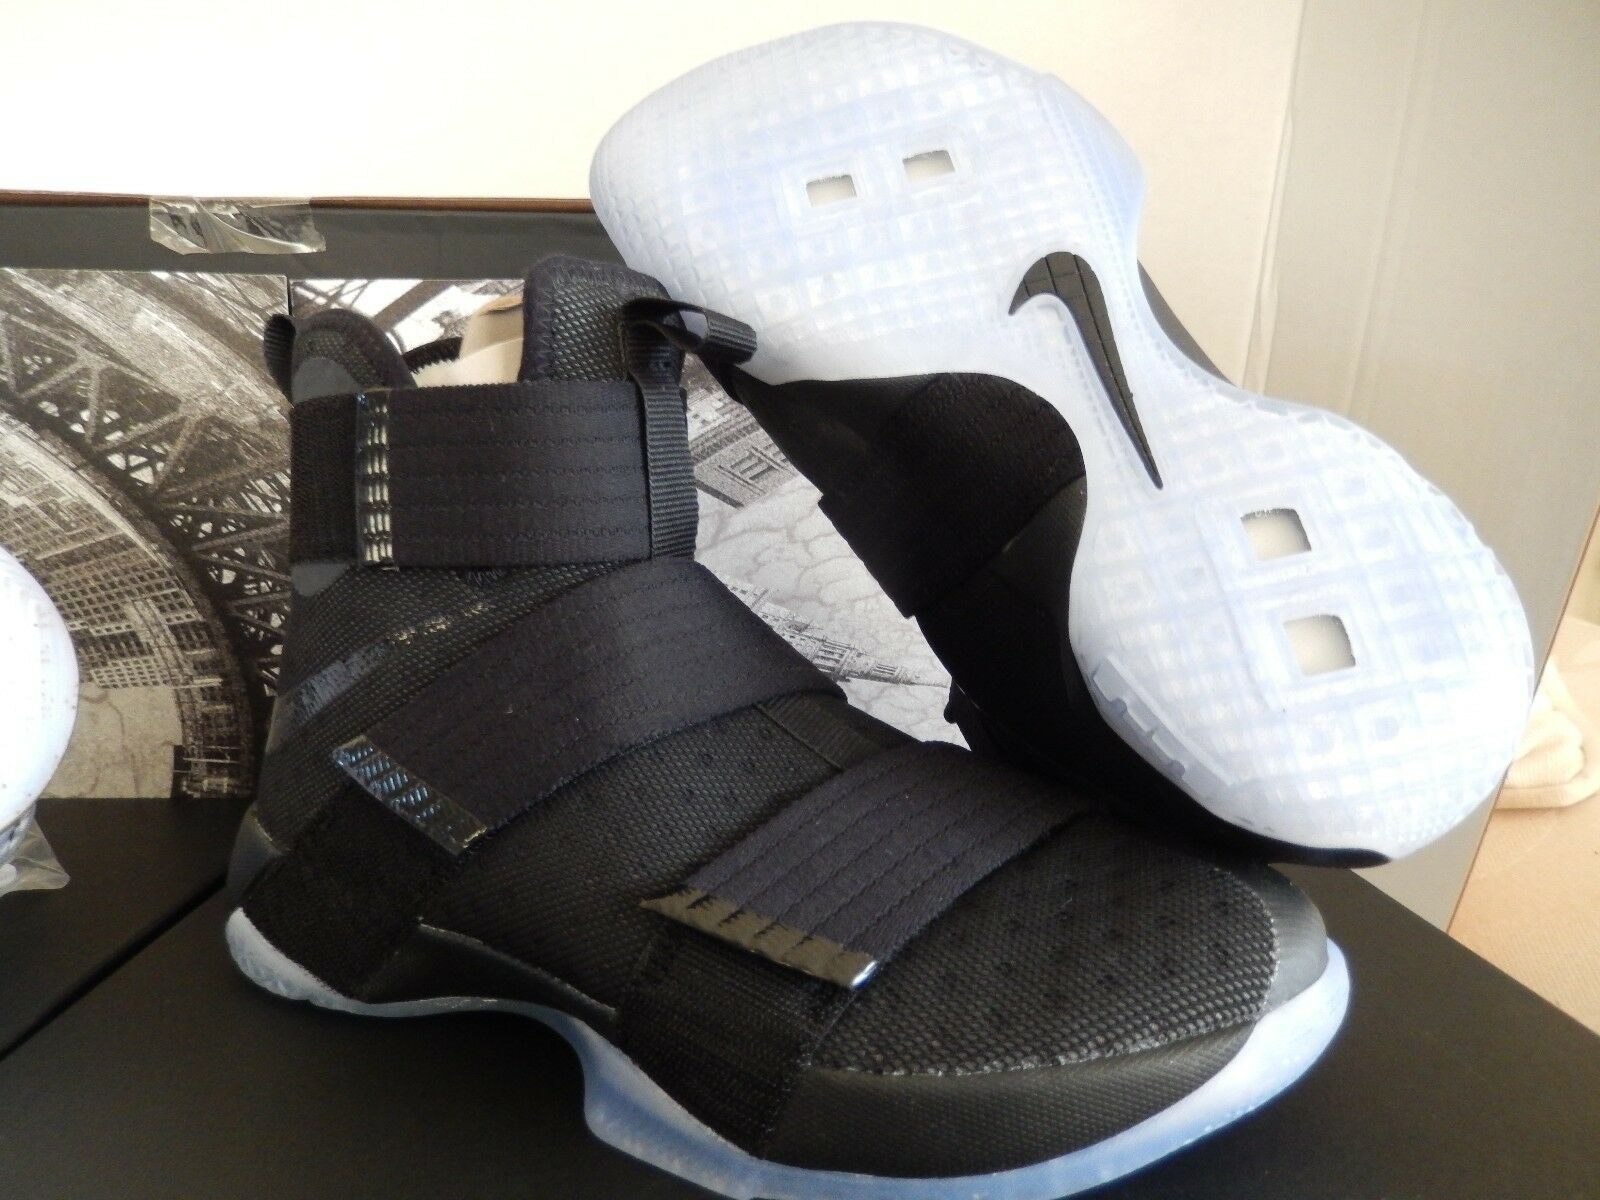 nike 4 wins-game 3 homecoming - packung - kyrie / lebron sz - packung 8 54961f